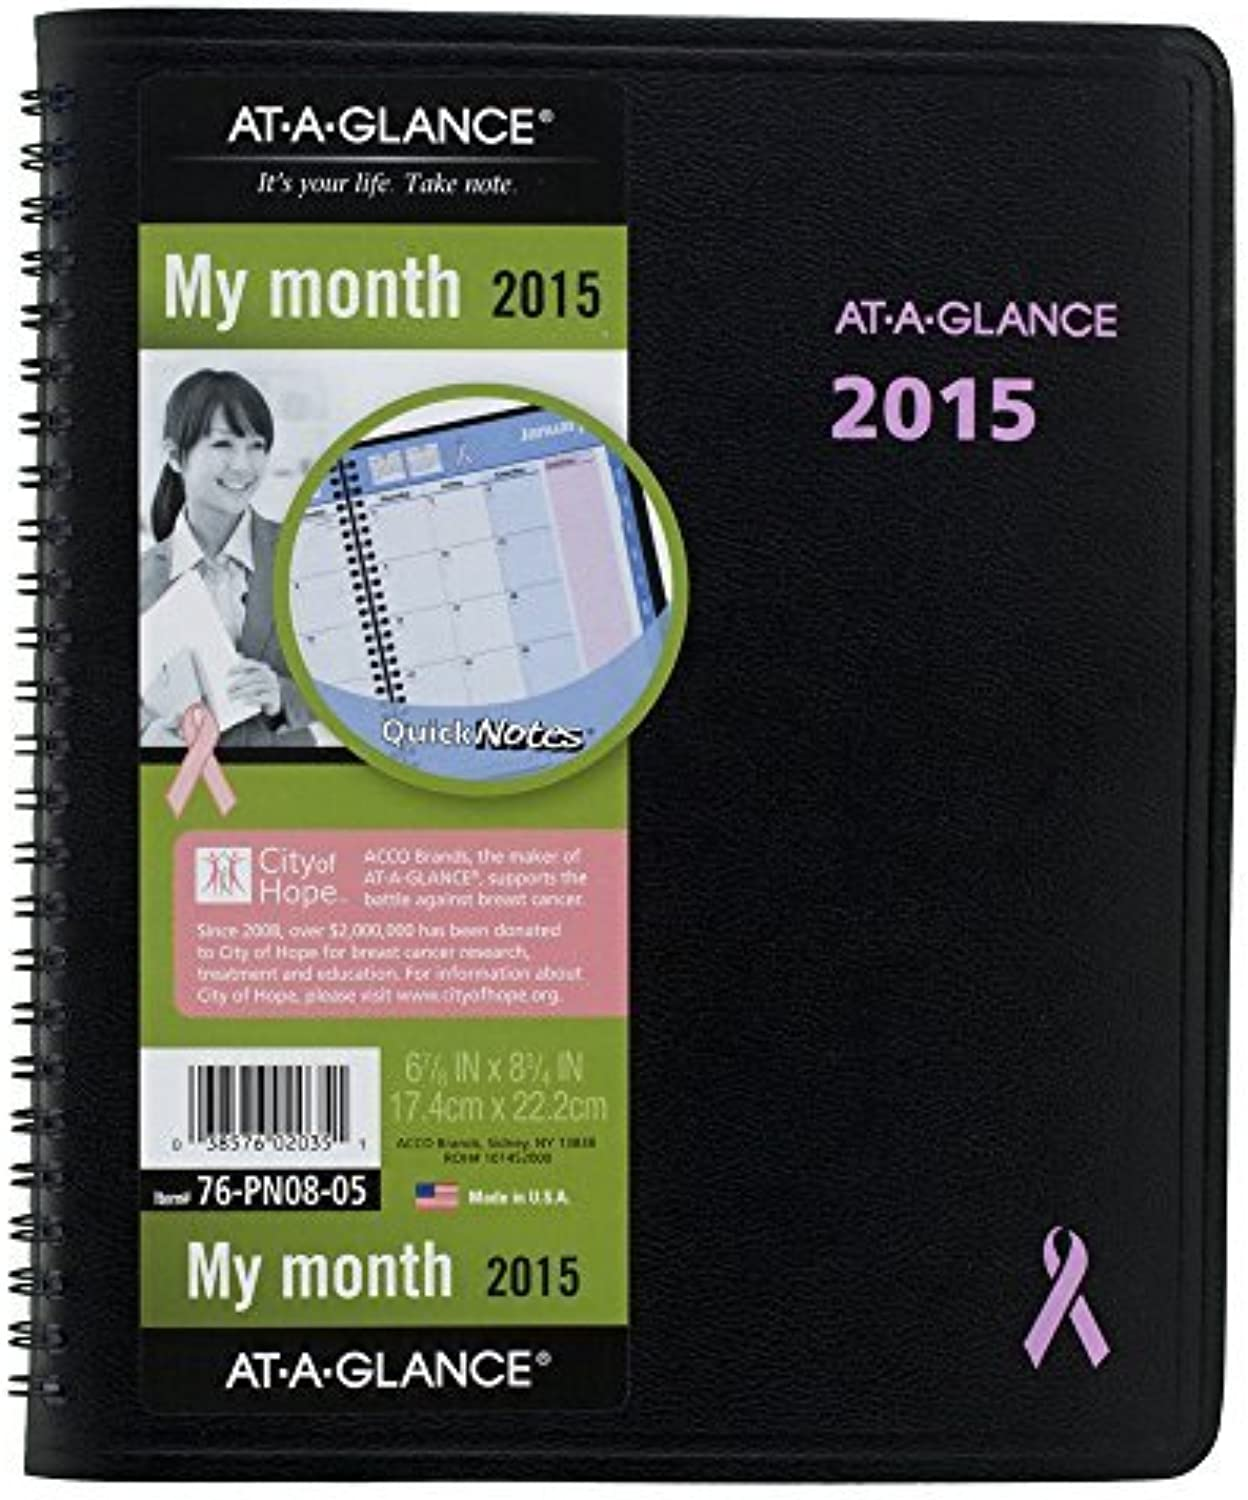 AT-A-GLANCE Monthly Planner 2015, QuickNotes, Special Edition, 6.88 x 8.75 Inch Page Größe, schwarz (76-PN08-05) by At-A-Glance B0141N62JY | Ausgewählte Materialien